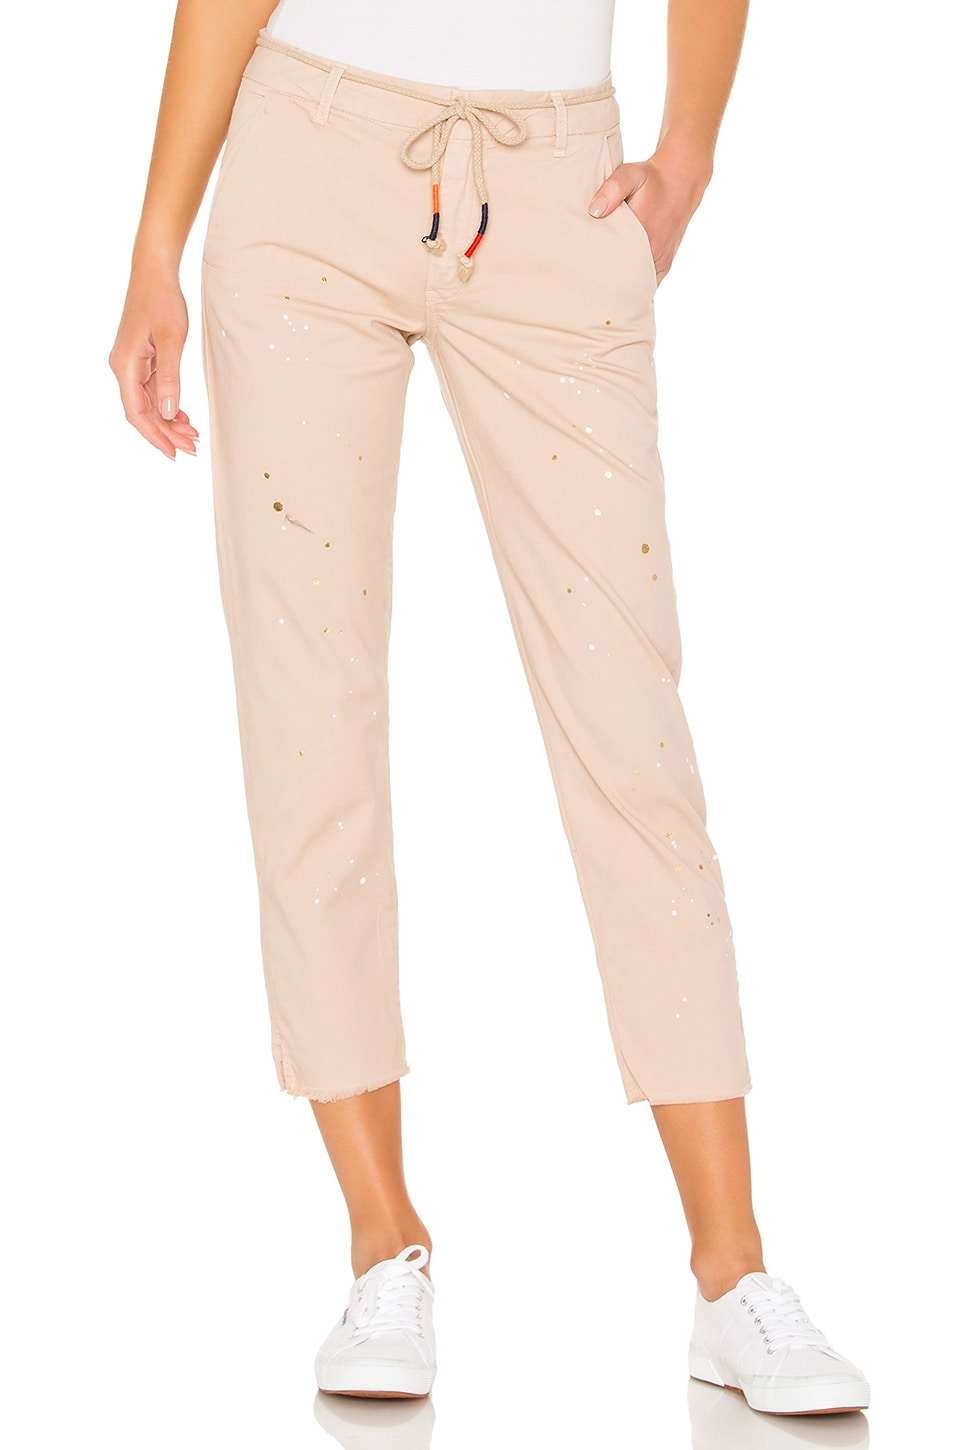 SUNDRY Paint Splatter La Fete Pant in Almond